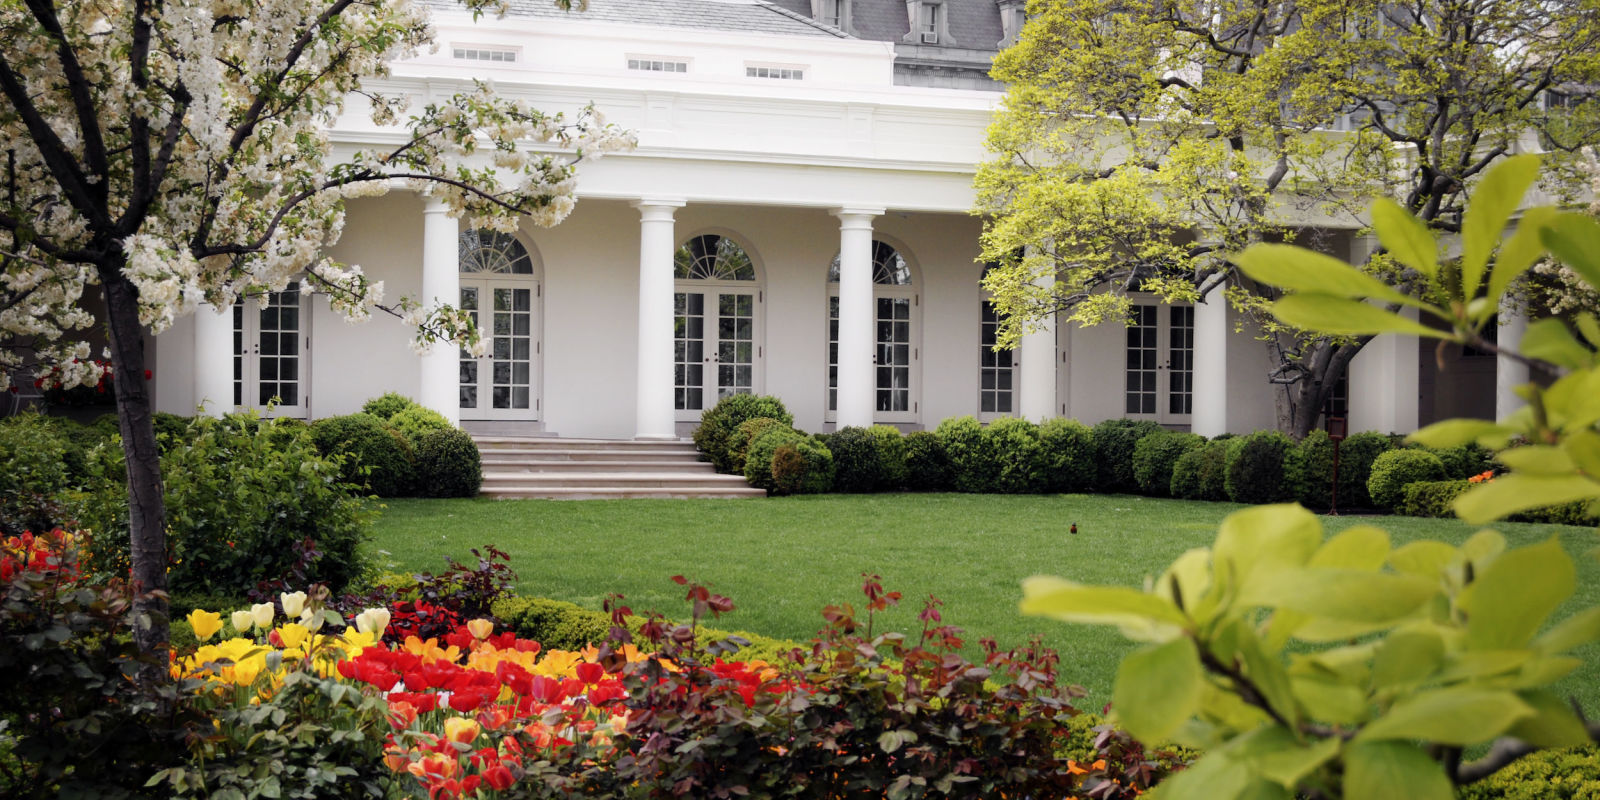 All the presidents 39 gardens interesting facts about the for Fun facts white house